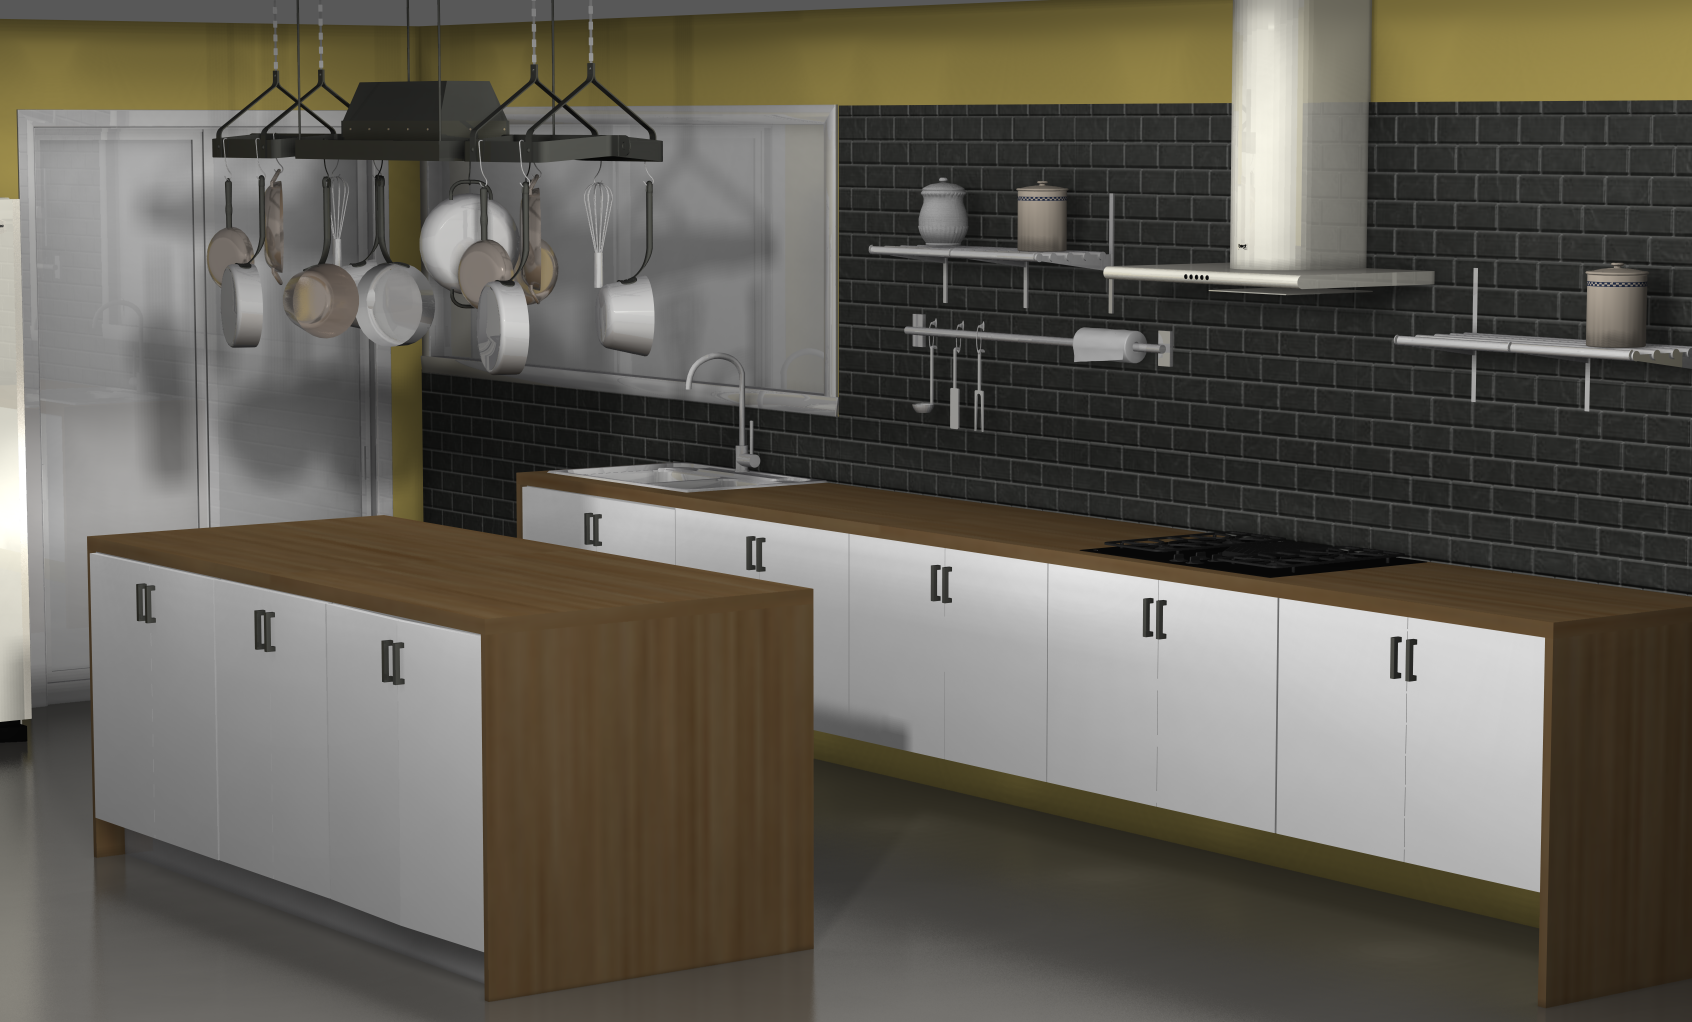 Kitchen Design Ideas An Ikea Kitchen With Fewer Wall Cabinets Ikea Kitchen Designs